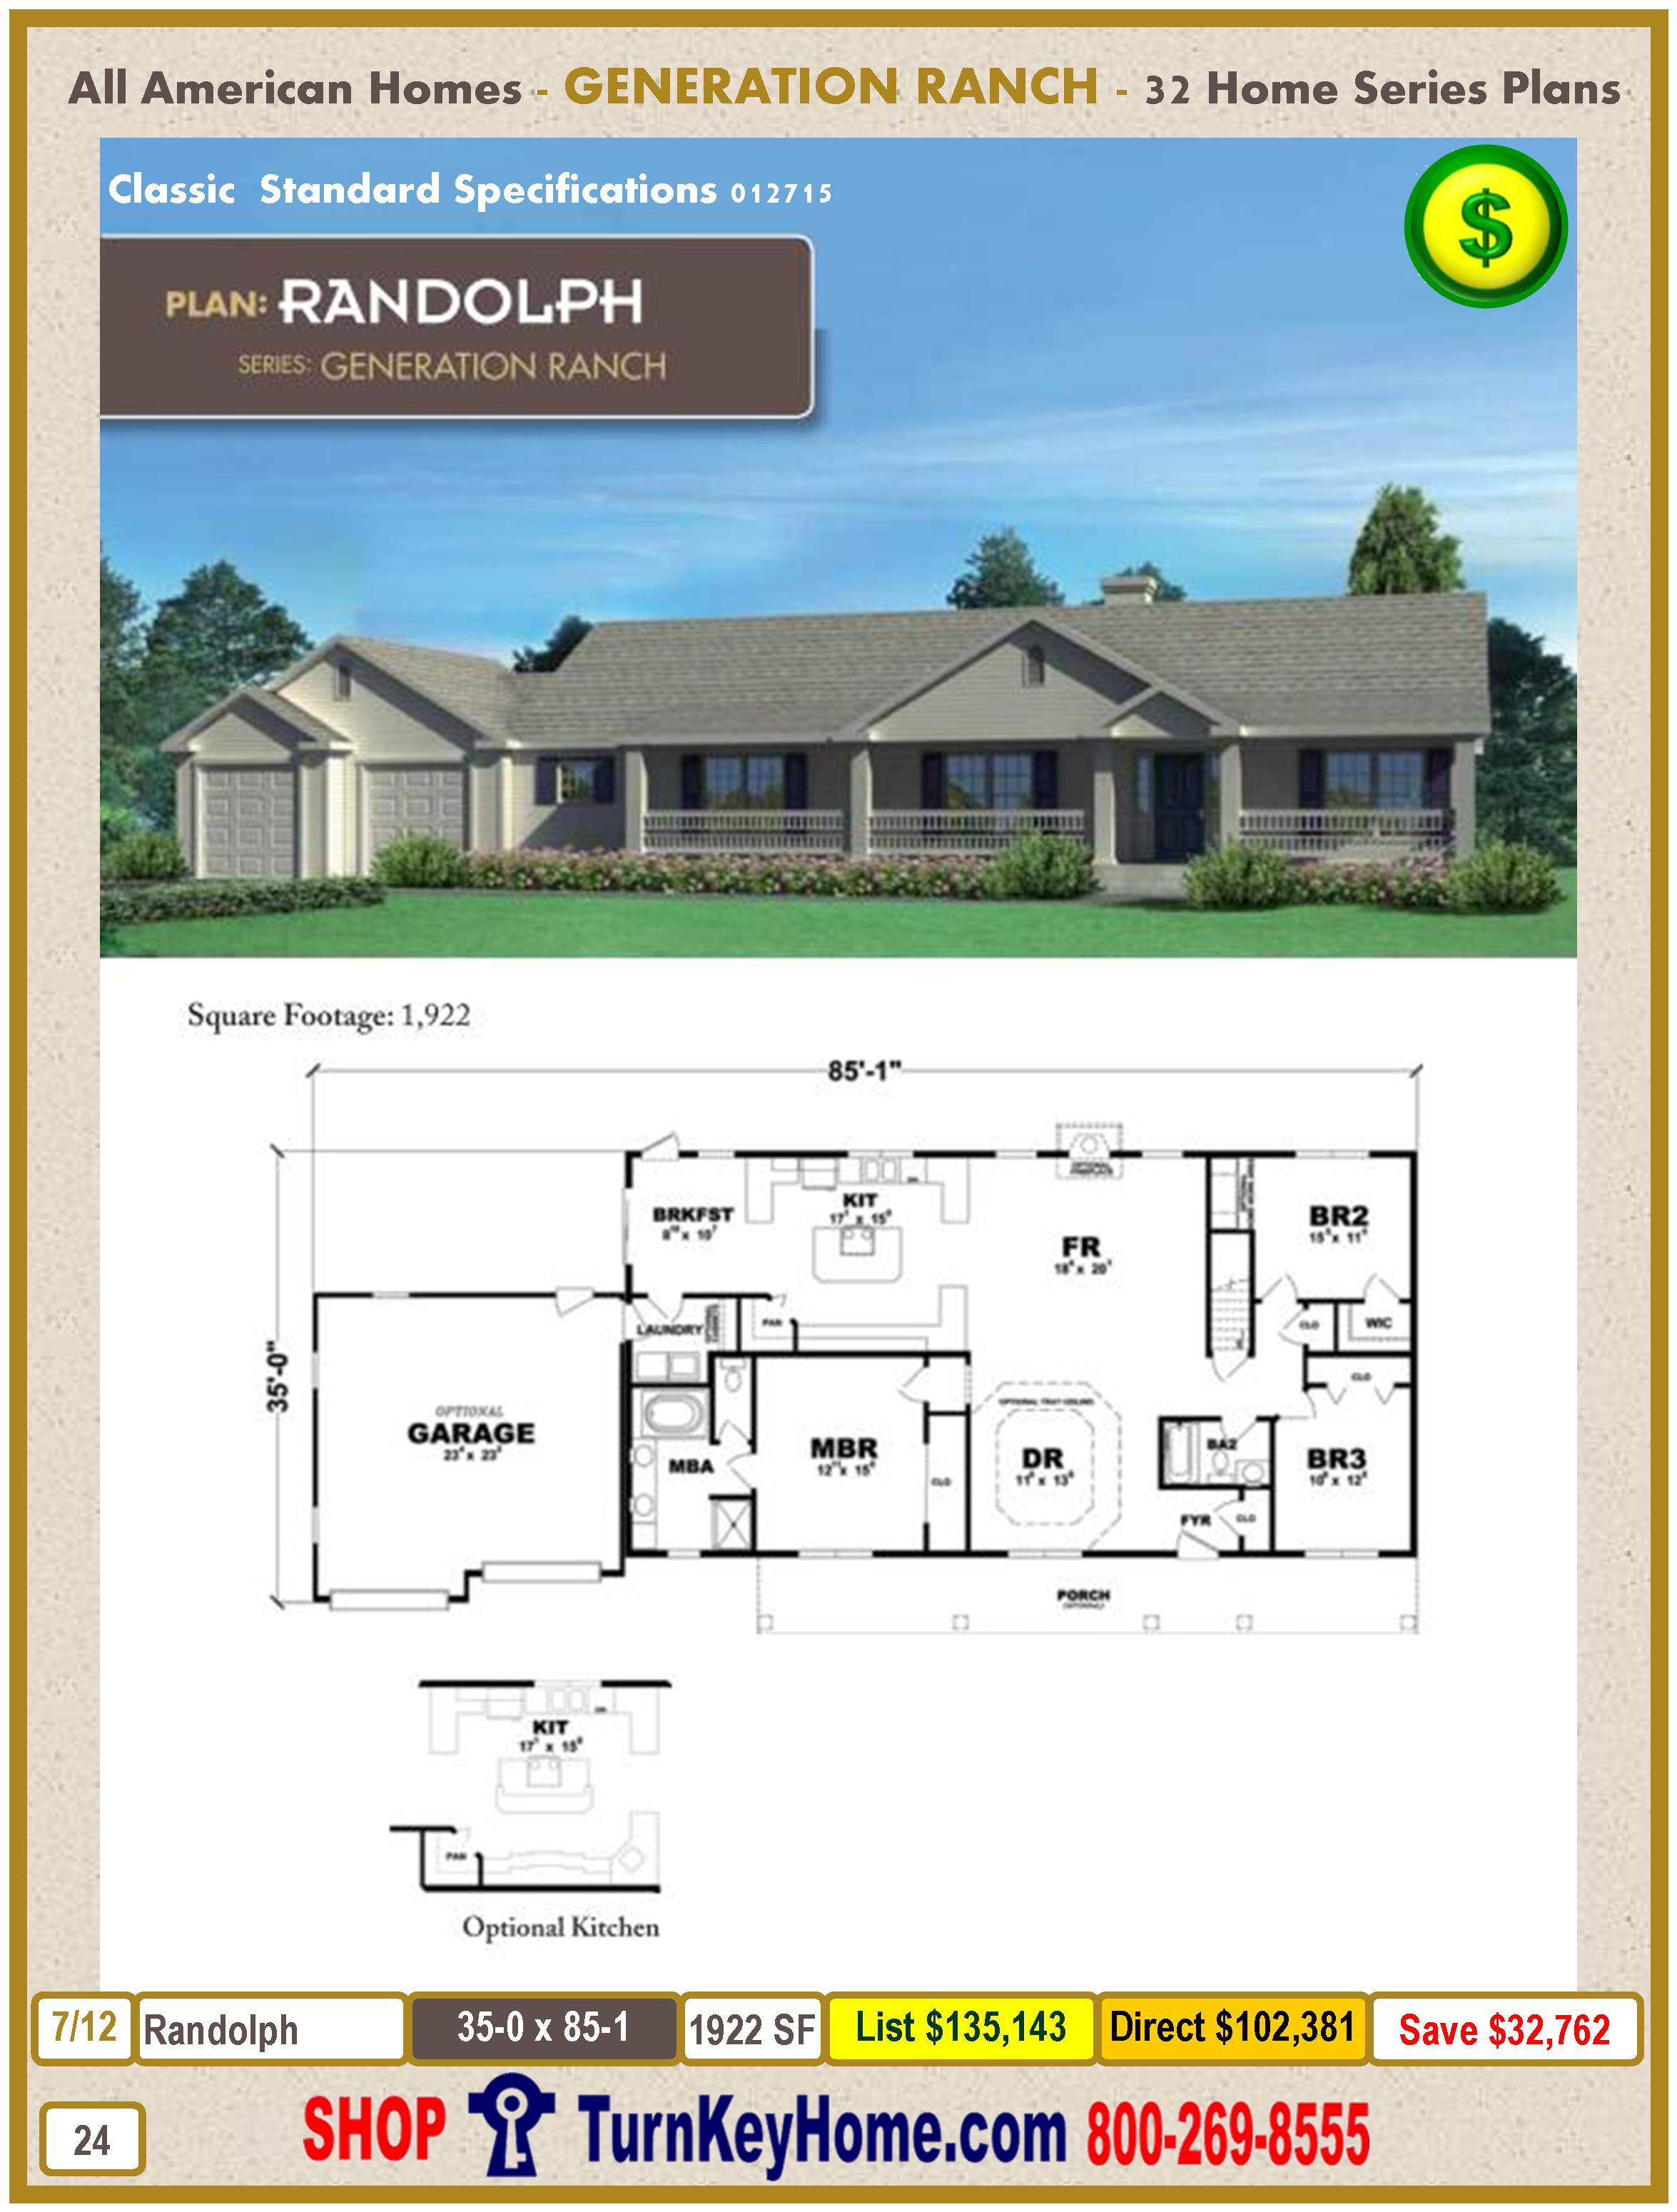 Modular.All.American.Homes.Generation.Ranch.Home.Series.Catalog.Page.24.Randolph.Direct.Price.021415